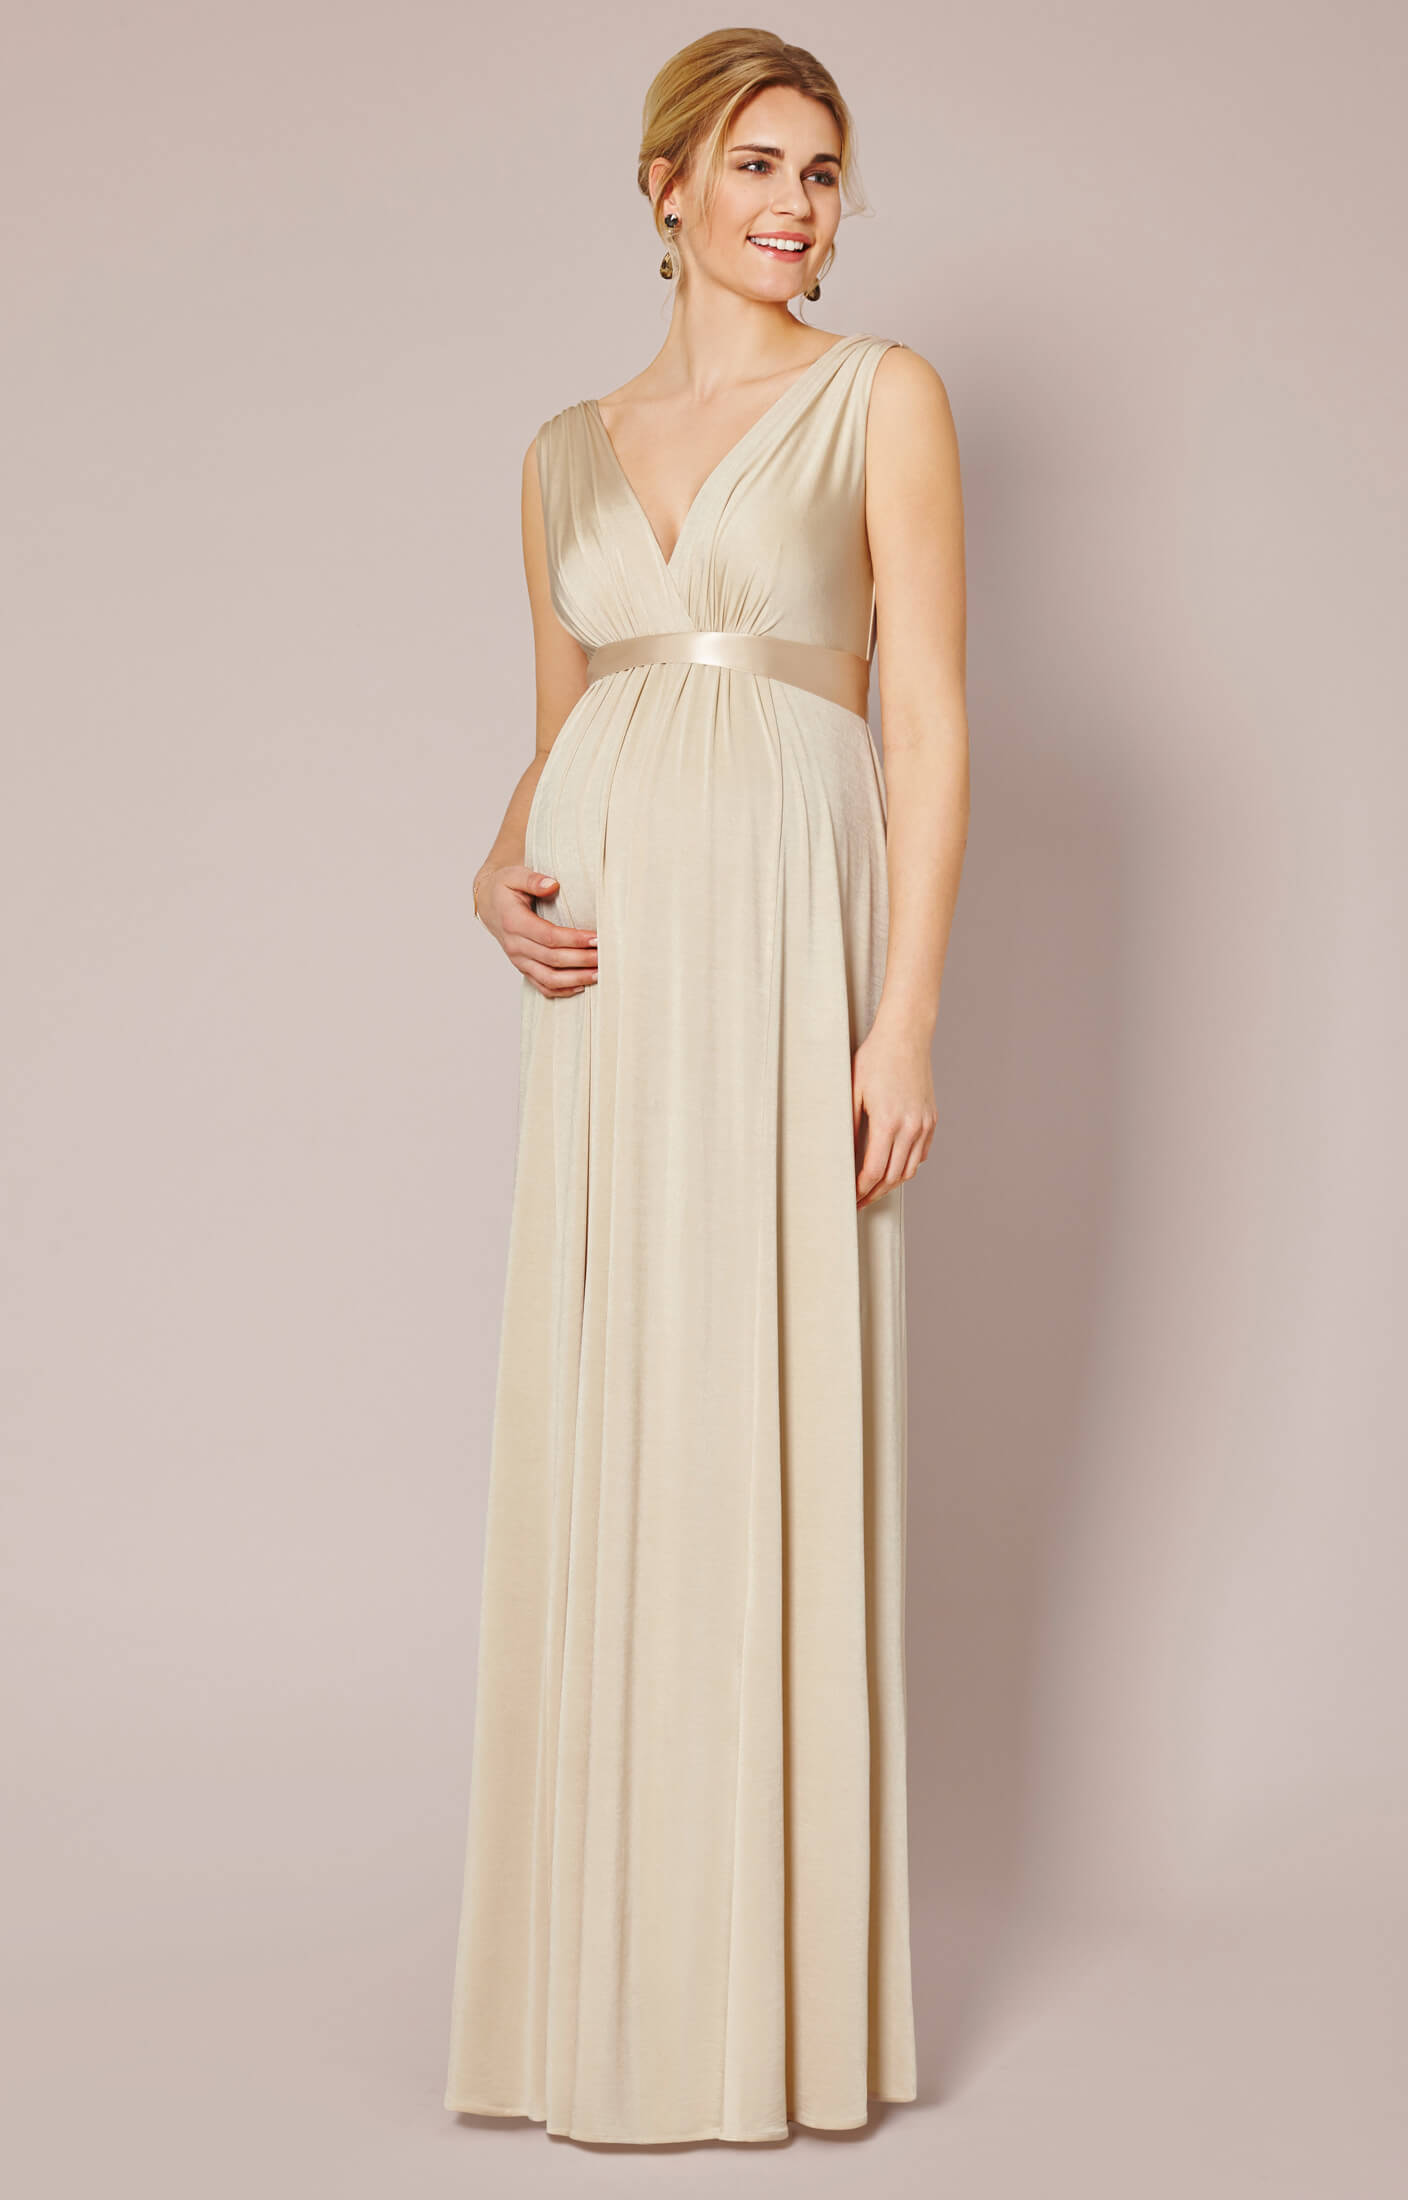 Goddess Maternity Dress : goddess, maternity, dress, Anastasia, Maternity, (Gold, Dust), Wedding, Dresses,, Evening, Party, Clothes, Tiffany